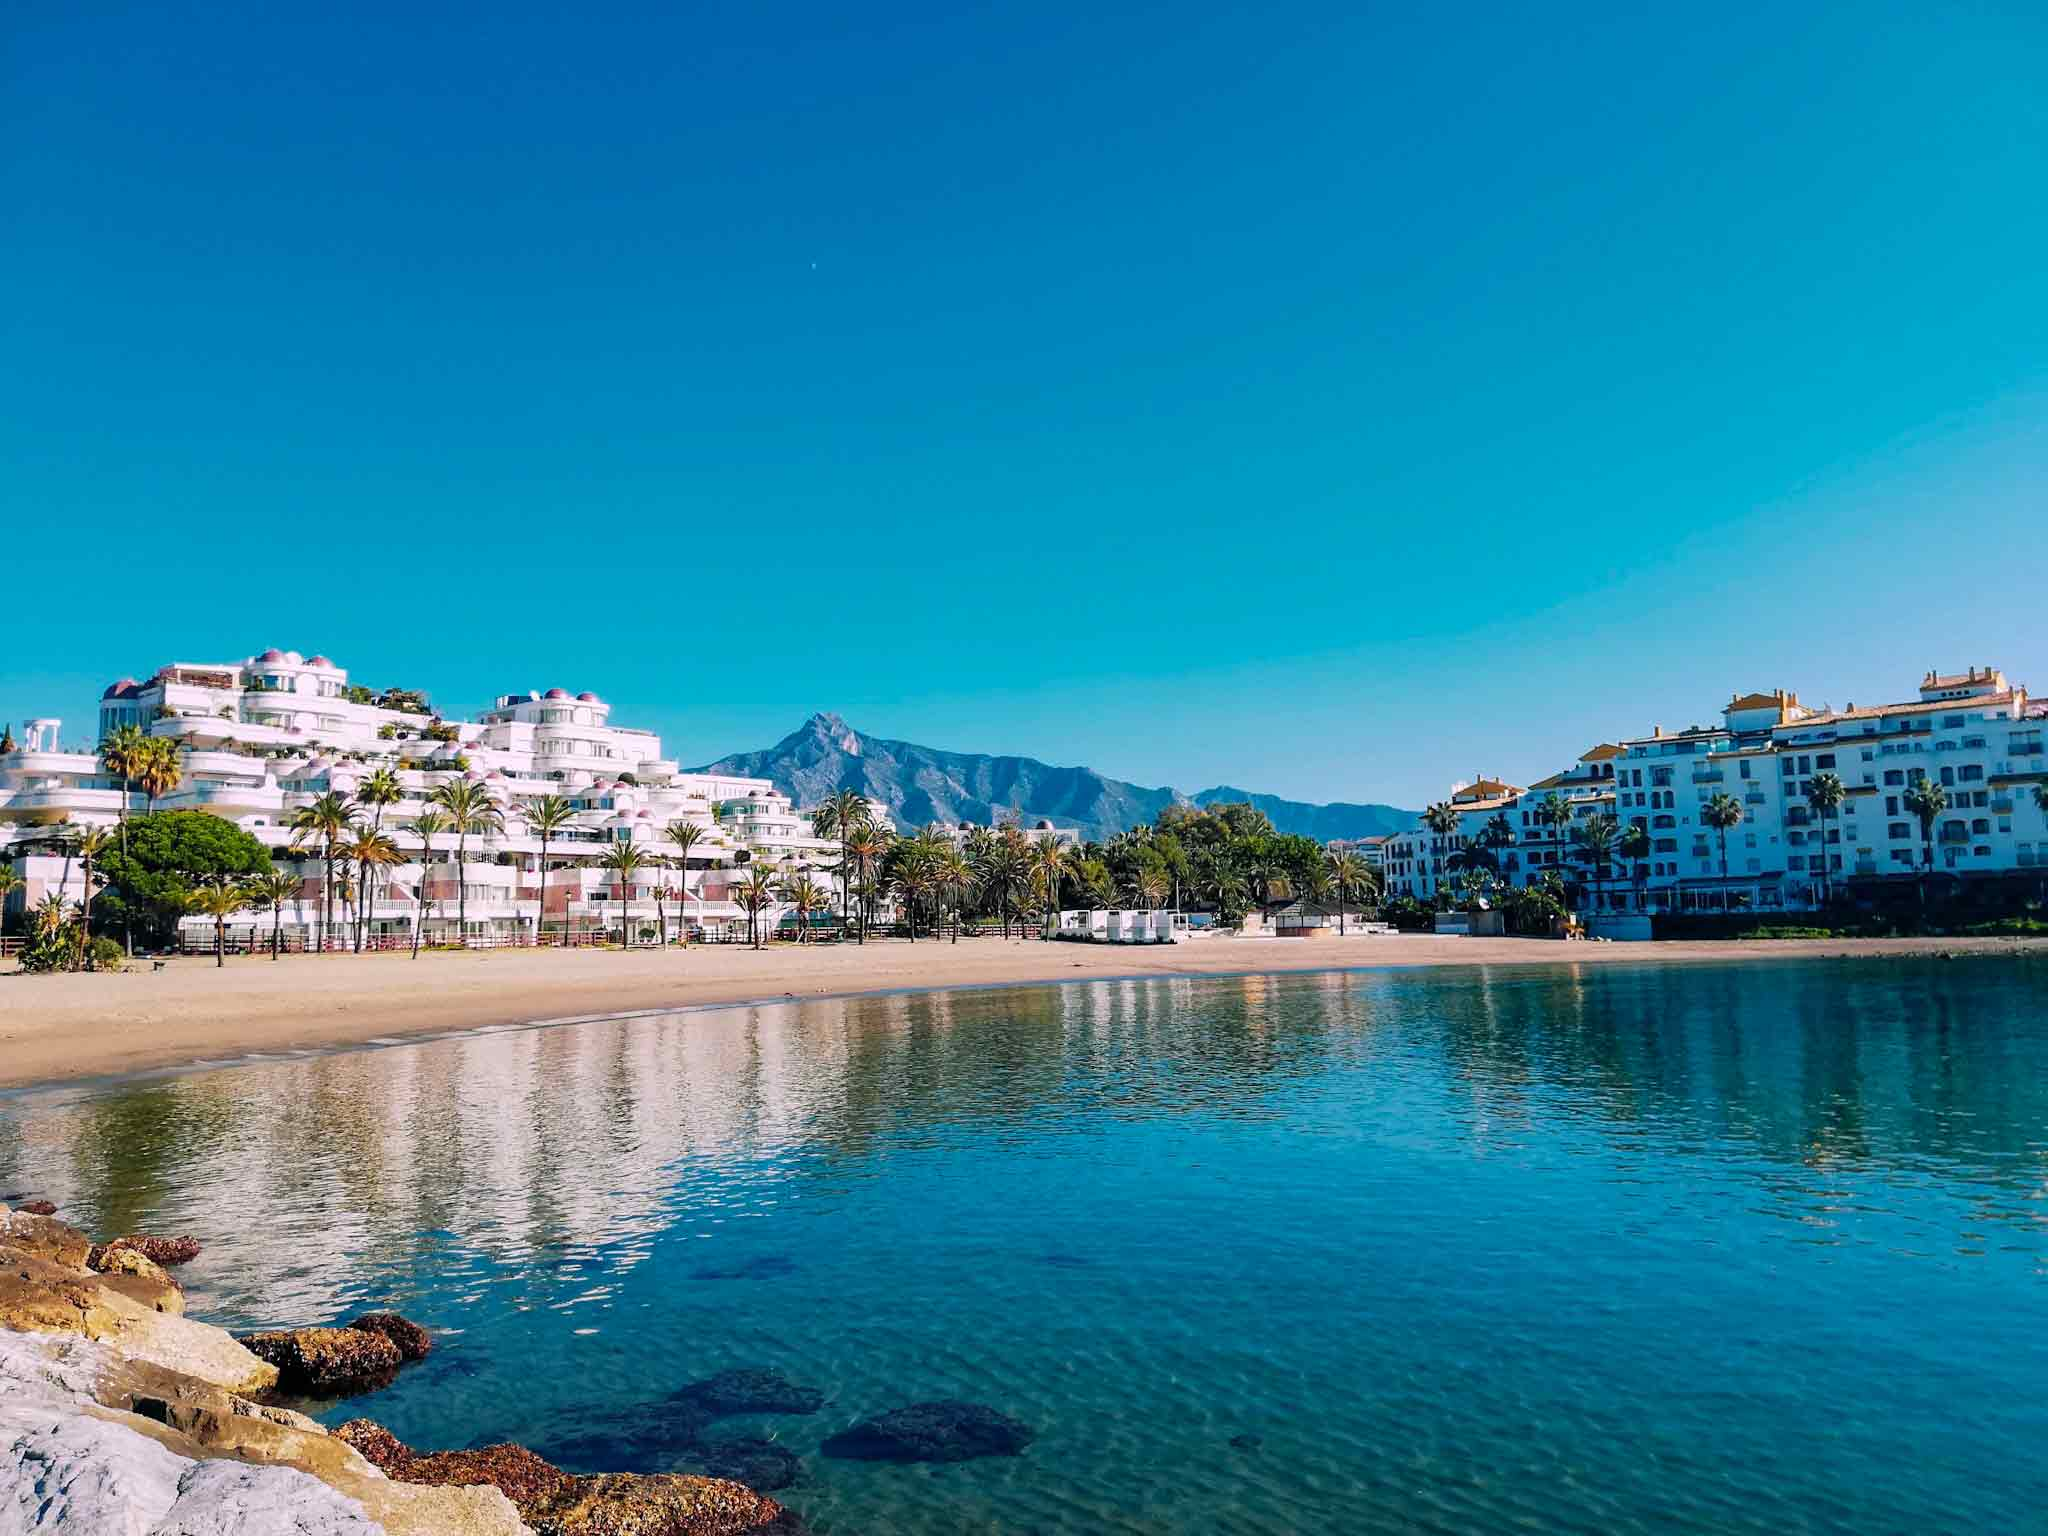 Marbella local guide: things to see and do suggested by a local